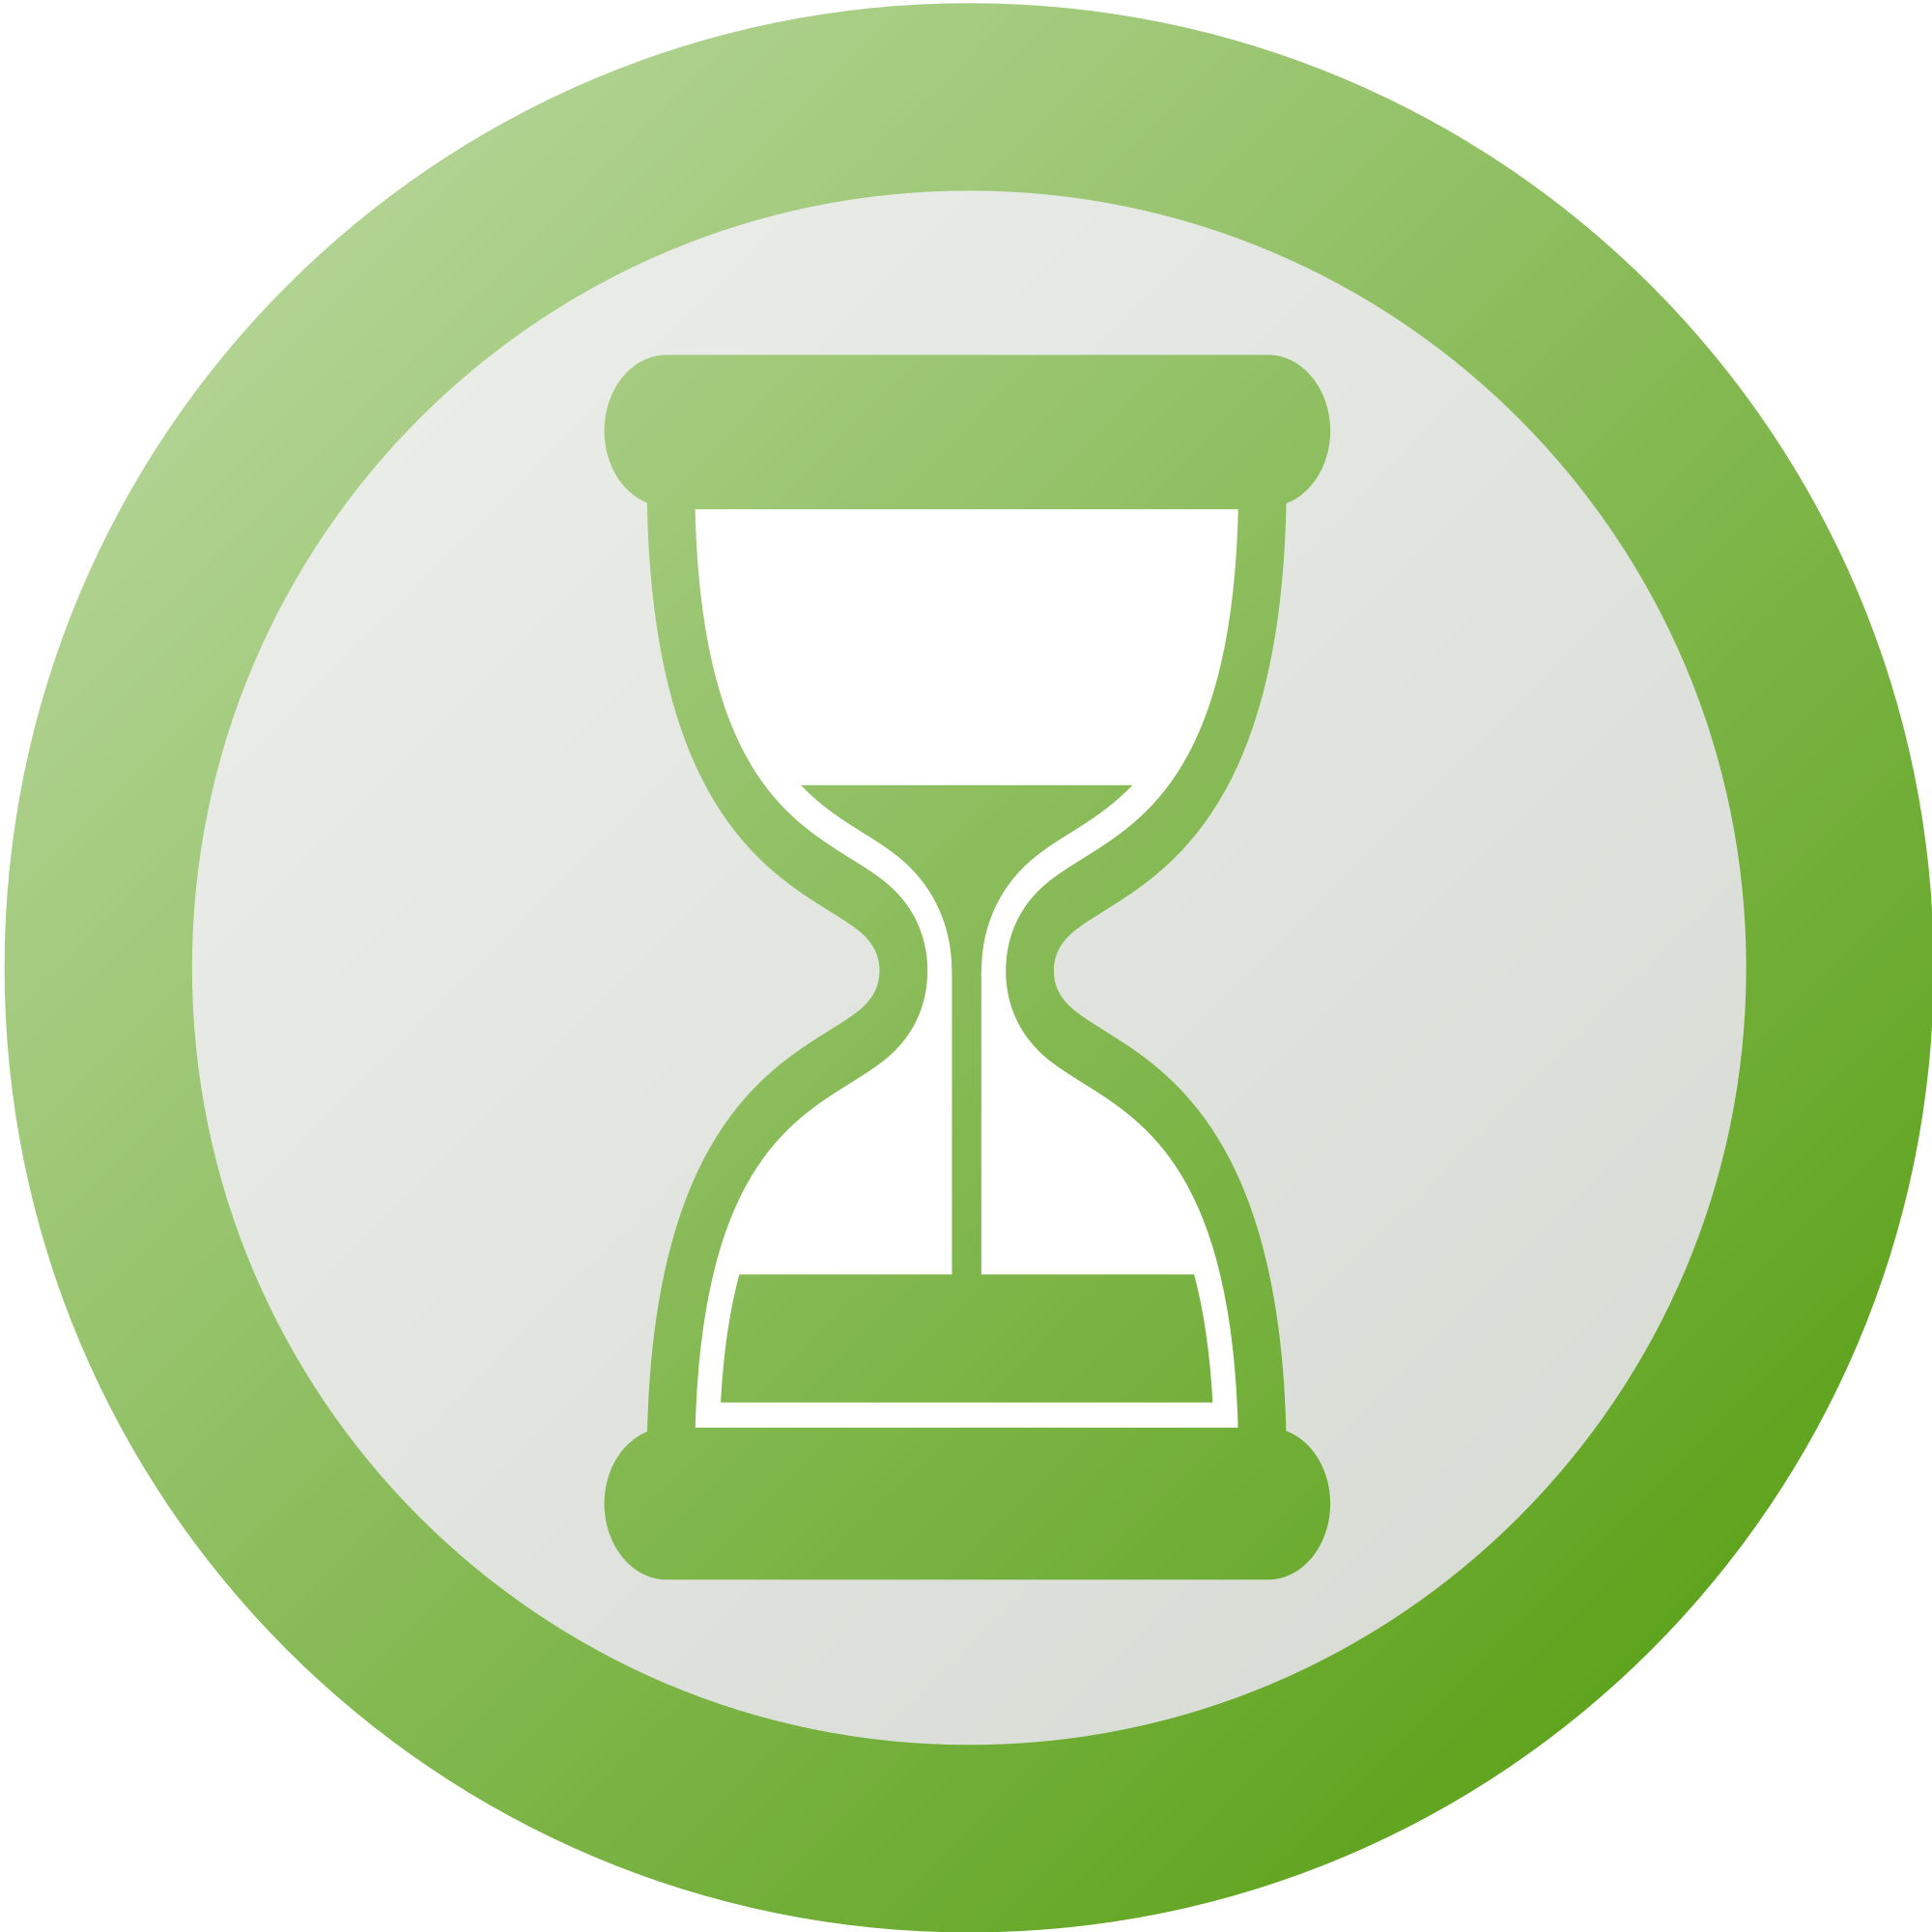 Hourglass clipart svg. File icon wikimedia commons